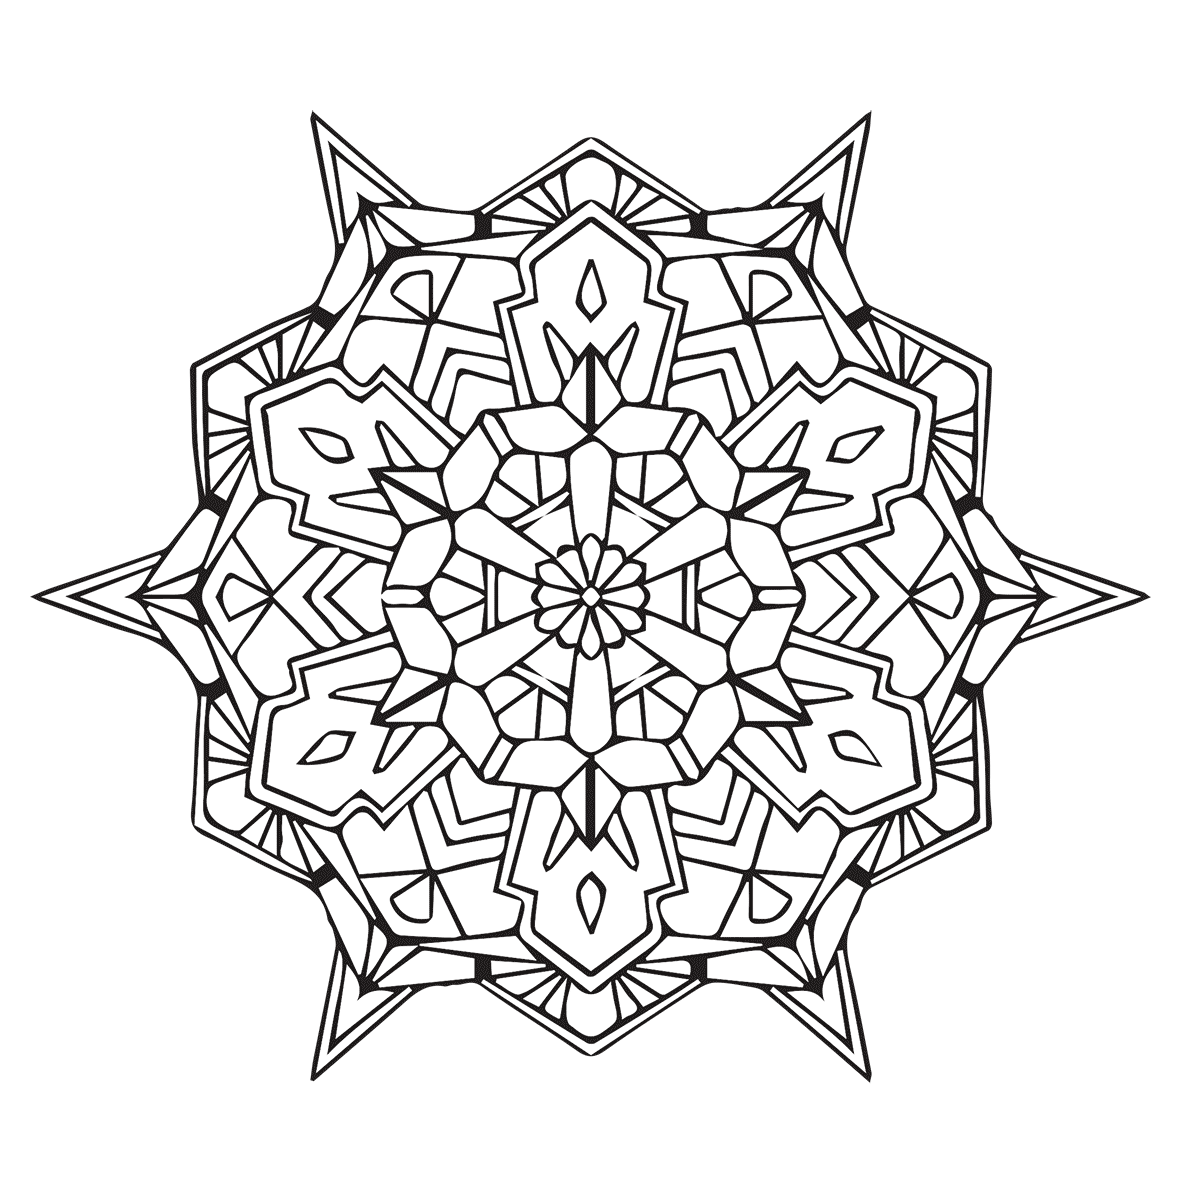 geometric mandala coloring page. Black Bedroom Furniture Sets. Home Design Ideas